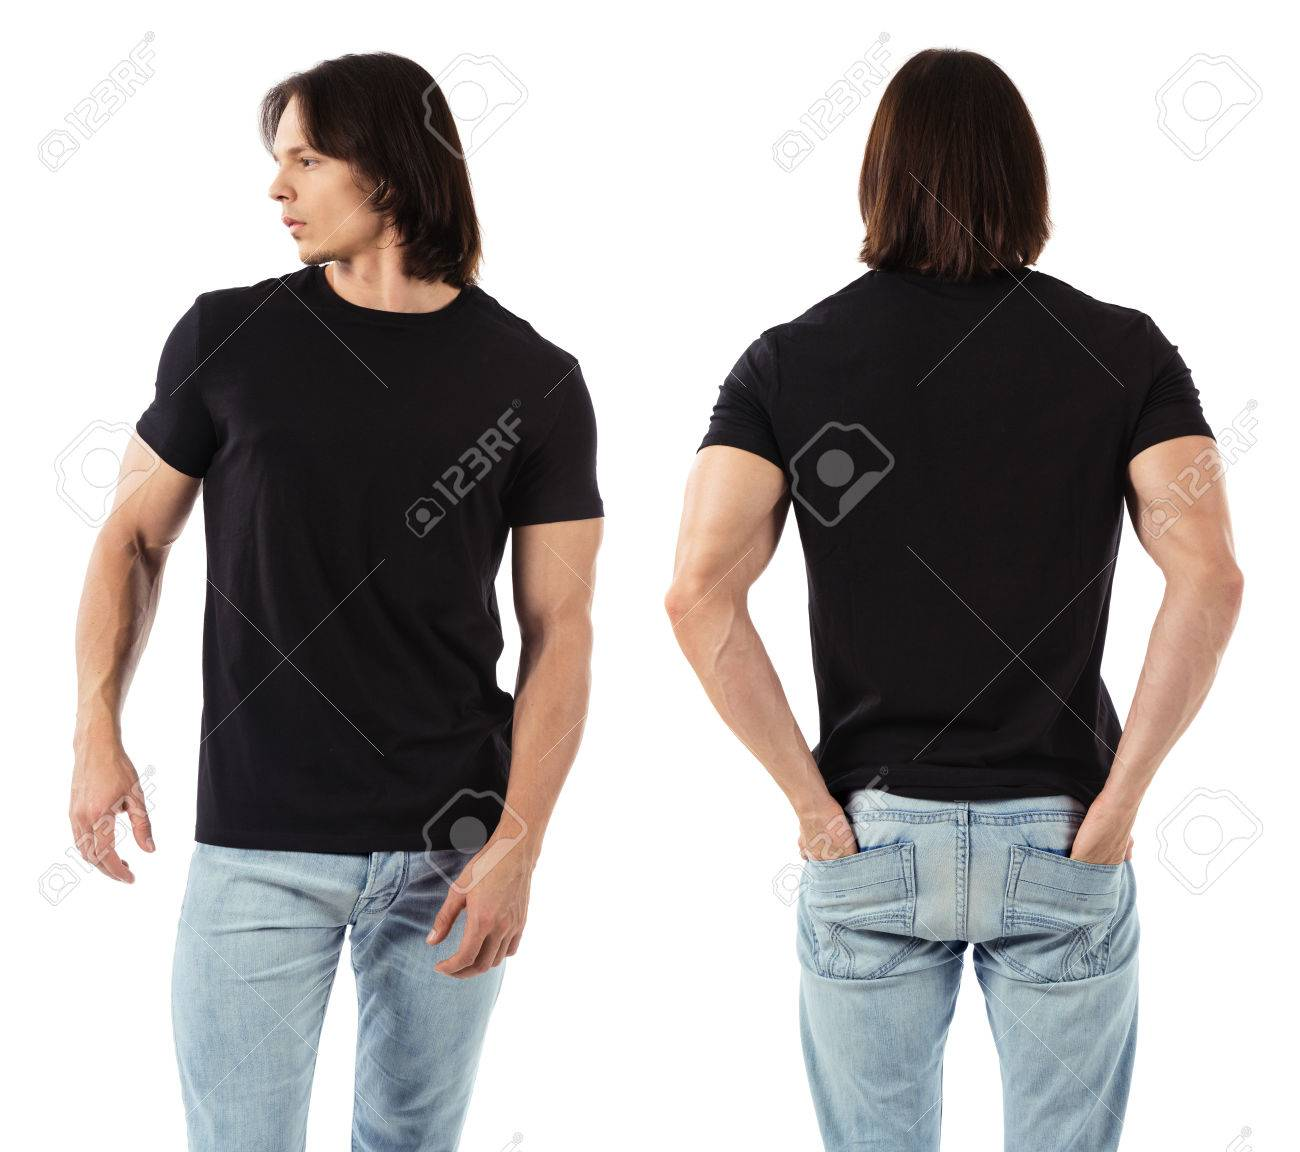 Blank black t shirt front and back - Photo Of A Man Wearing Blank Black T Shirt Front And Back Ready